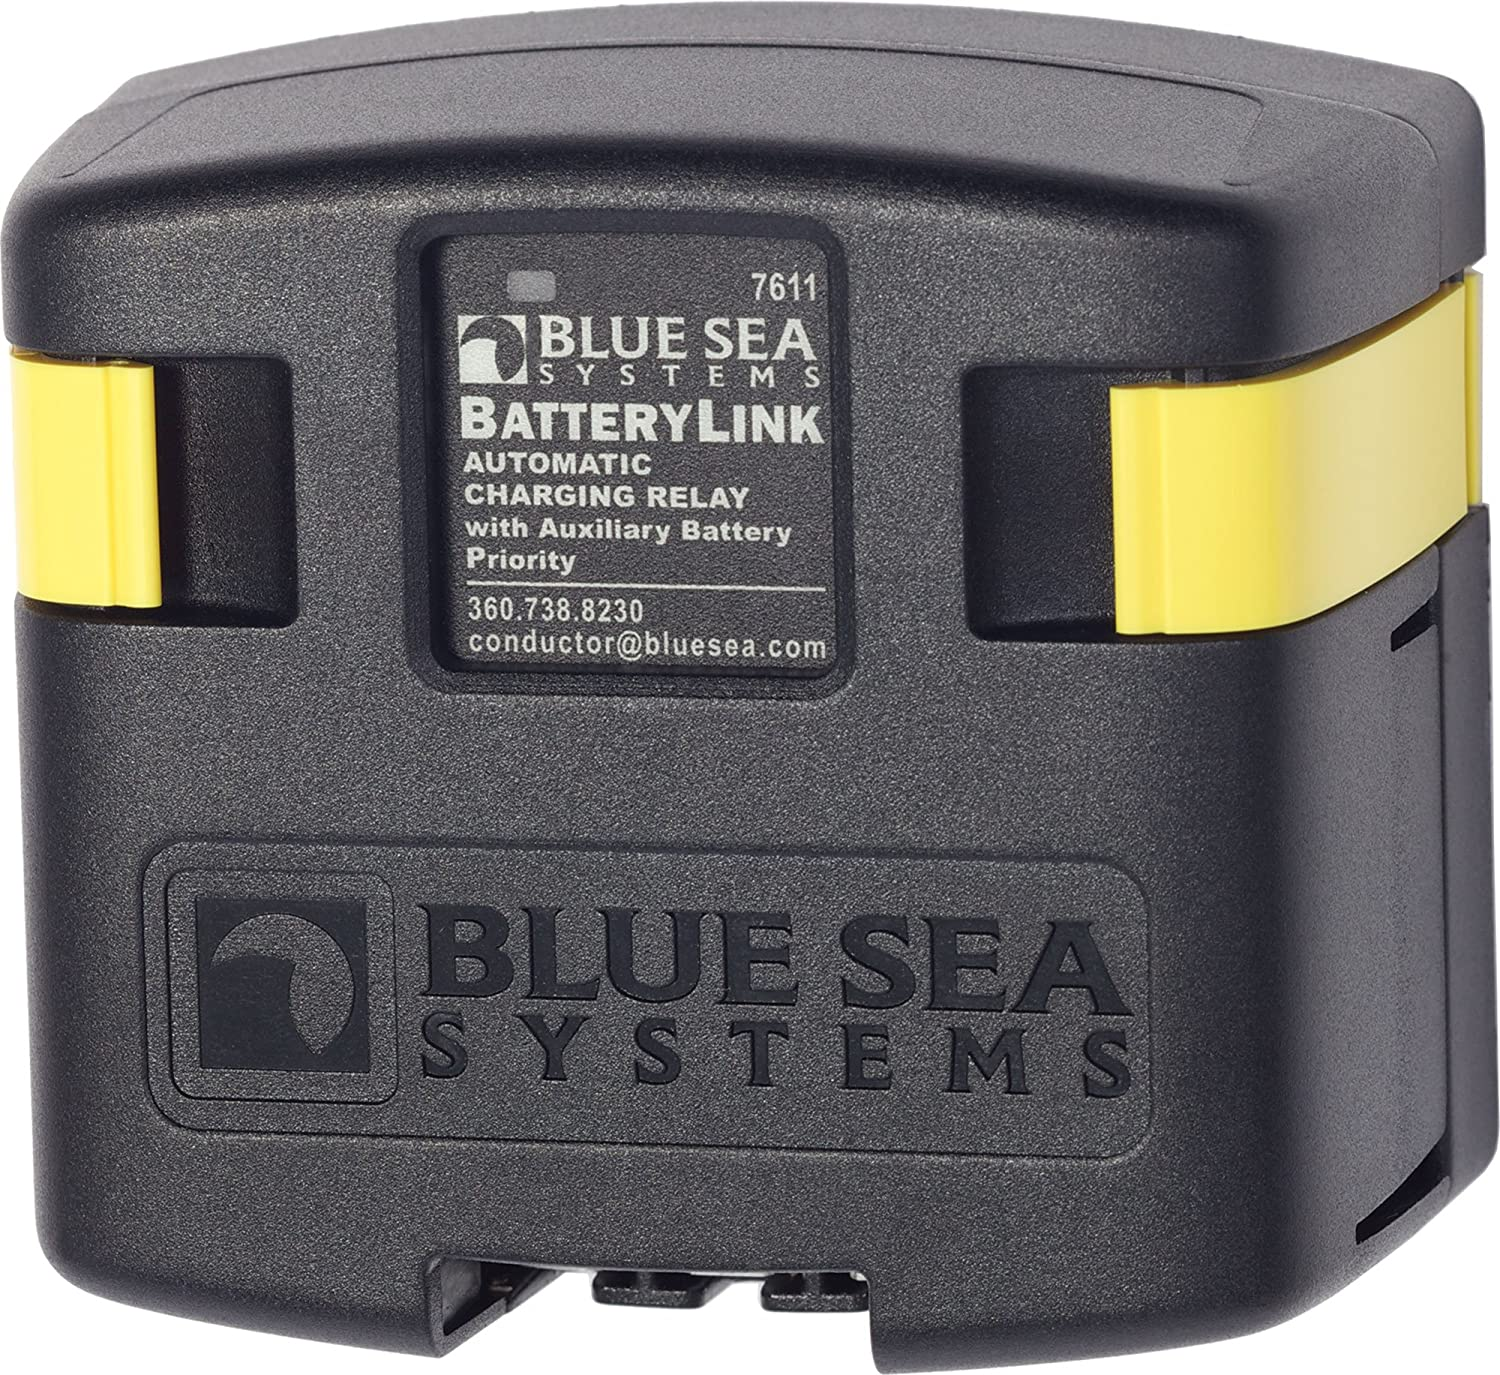 ACRs Blue Sea Systems Automatic Charging Relays